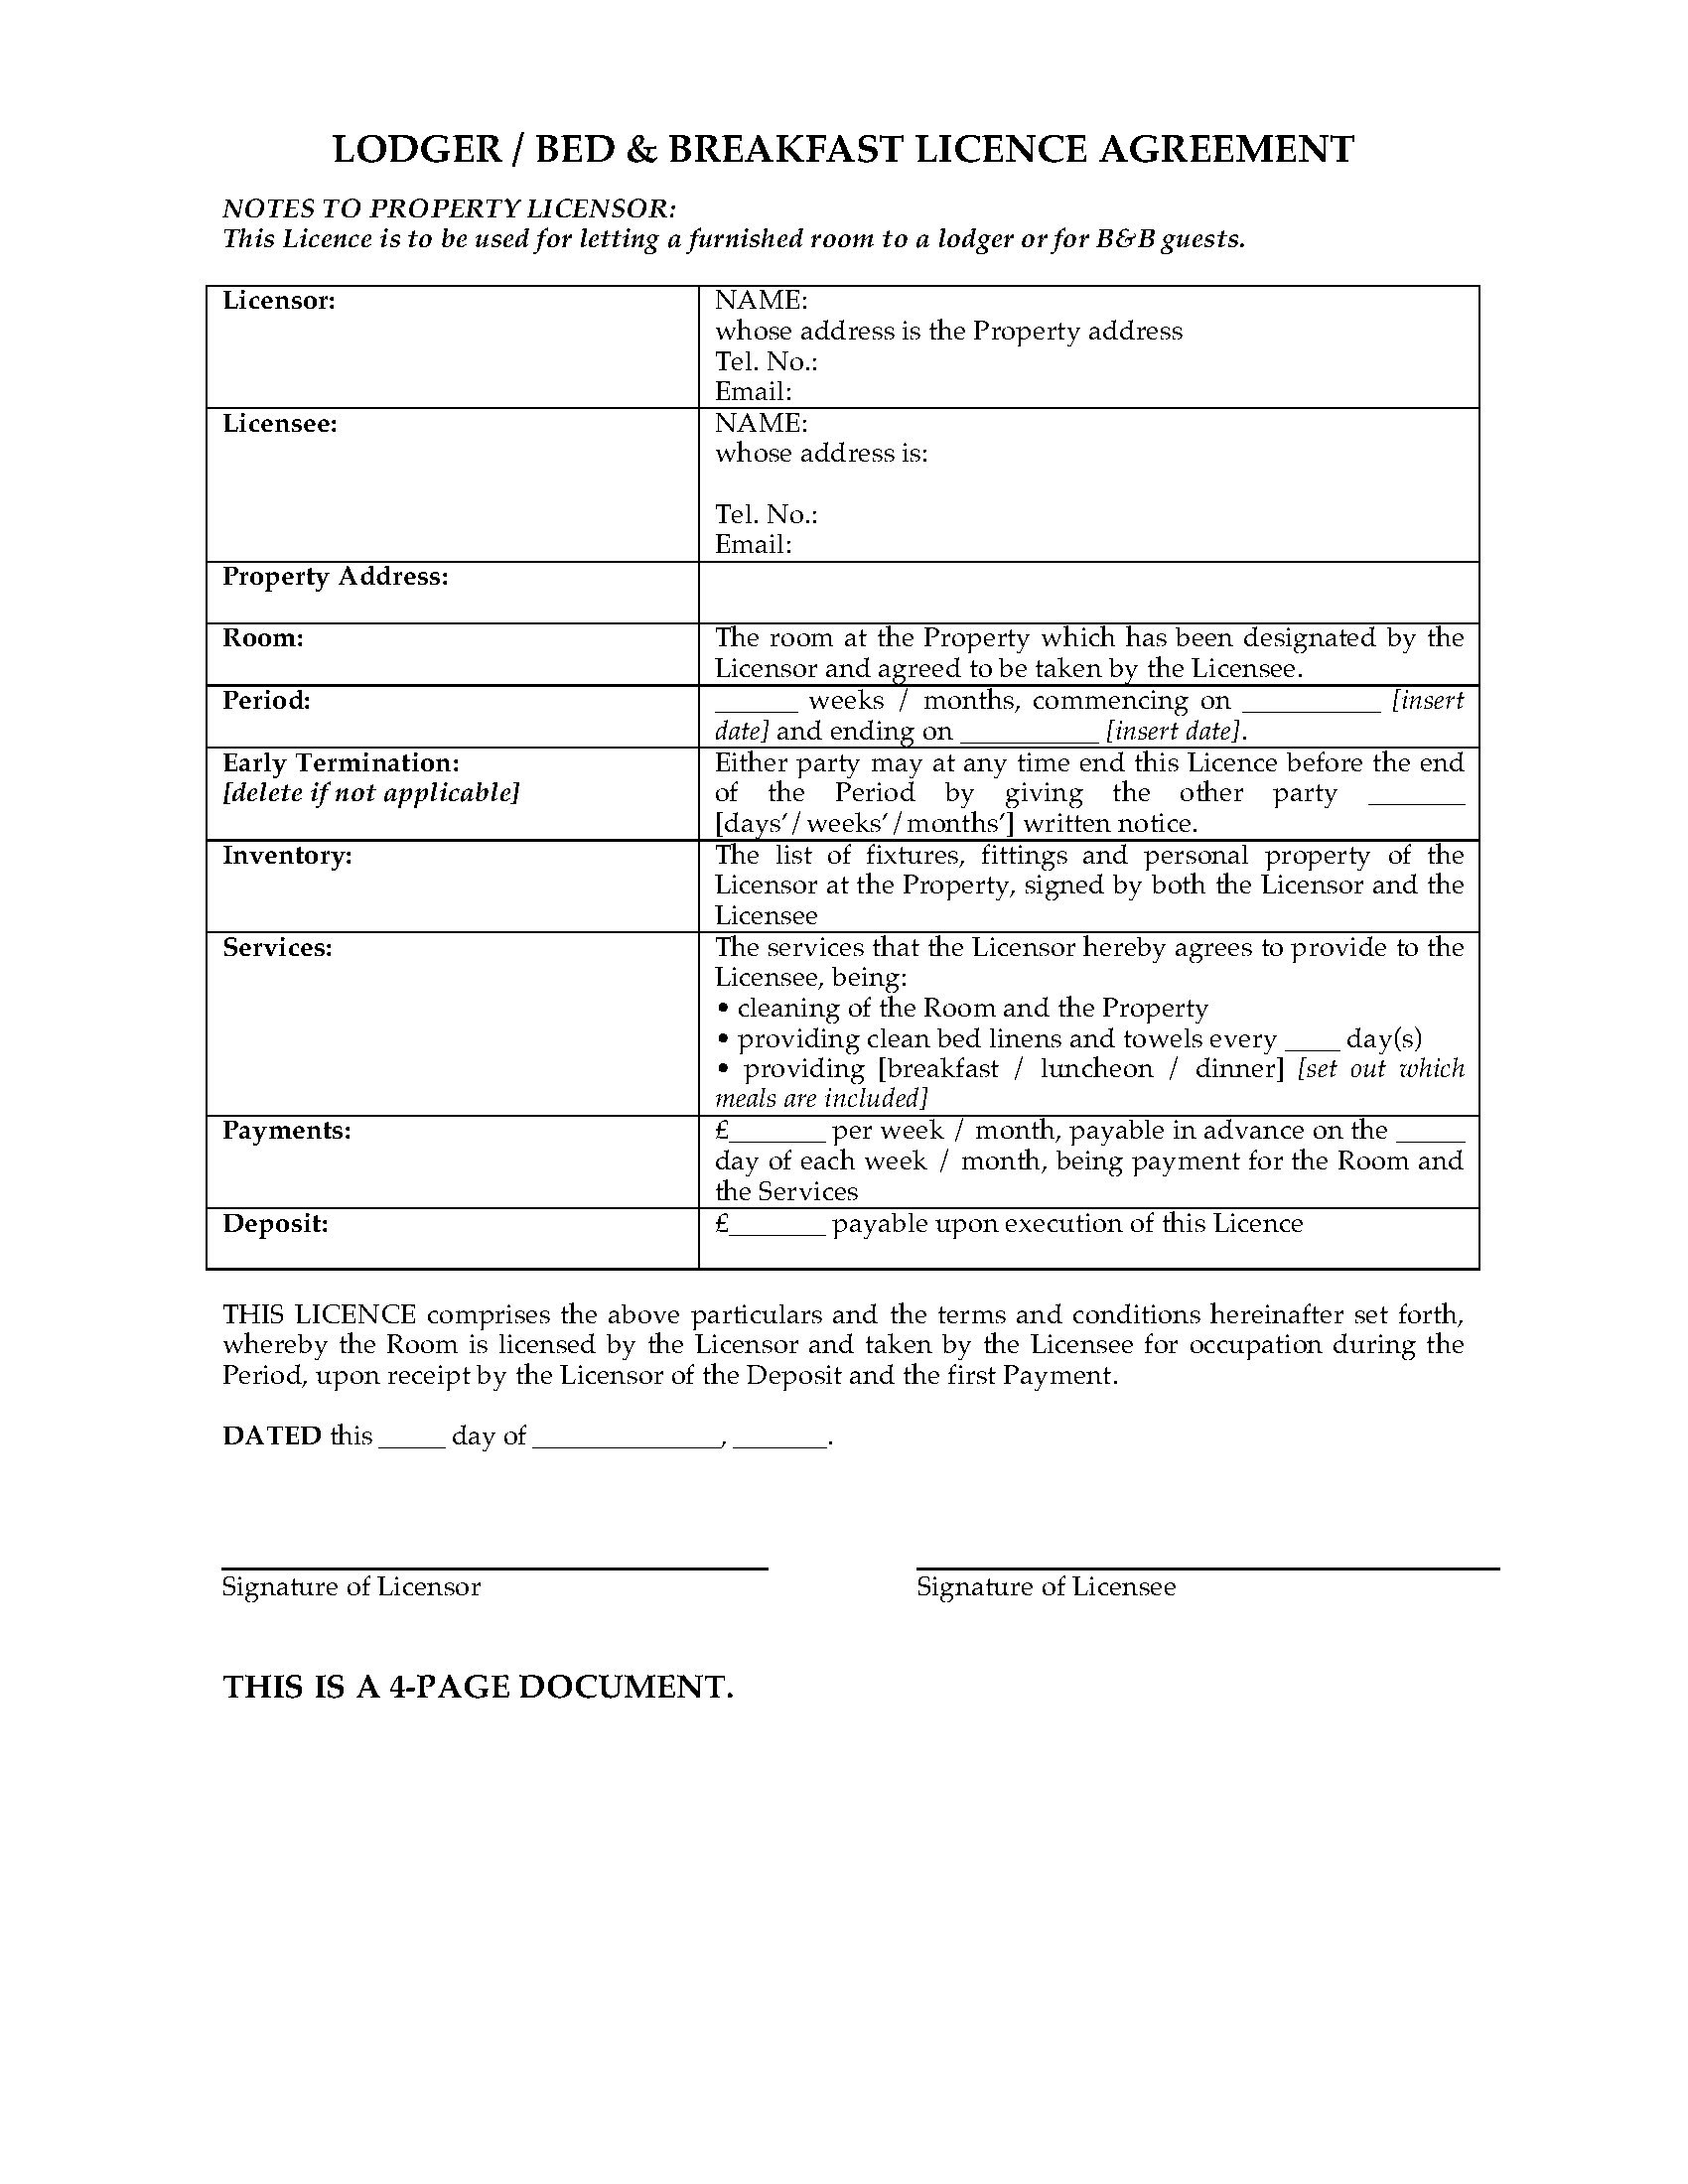 Uk Bed And Breakfast Licence Agreement  Legal Forms And Business Regarding Landlord Lodger Agreement Template